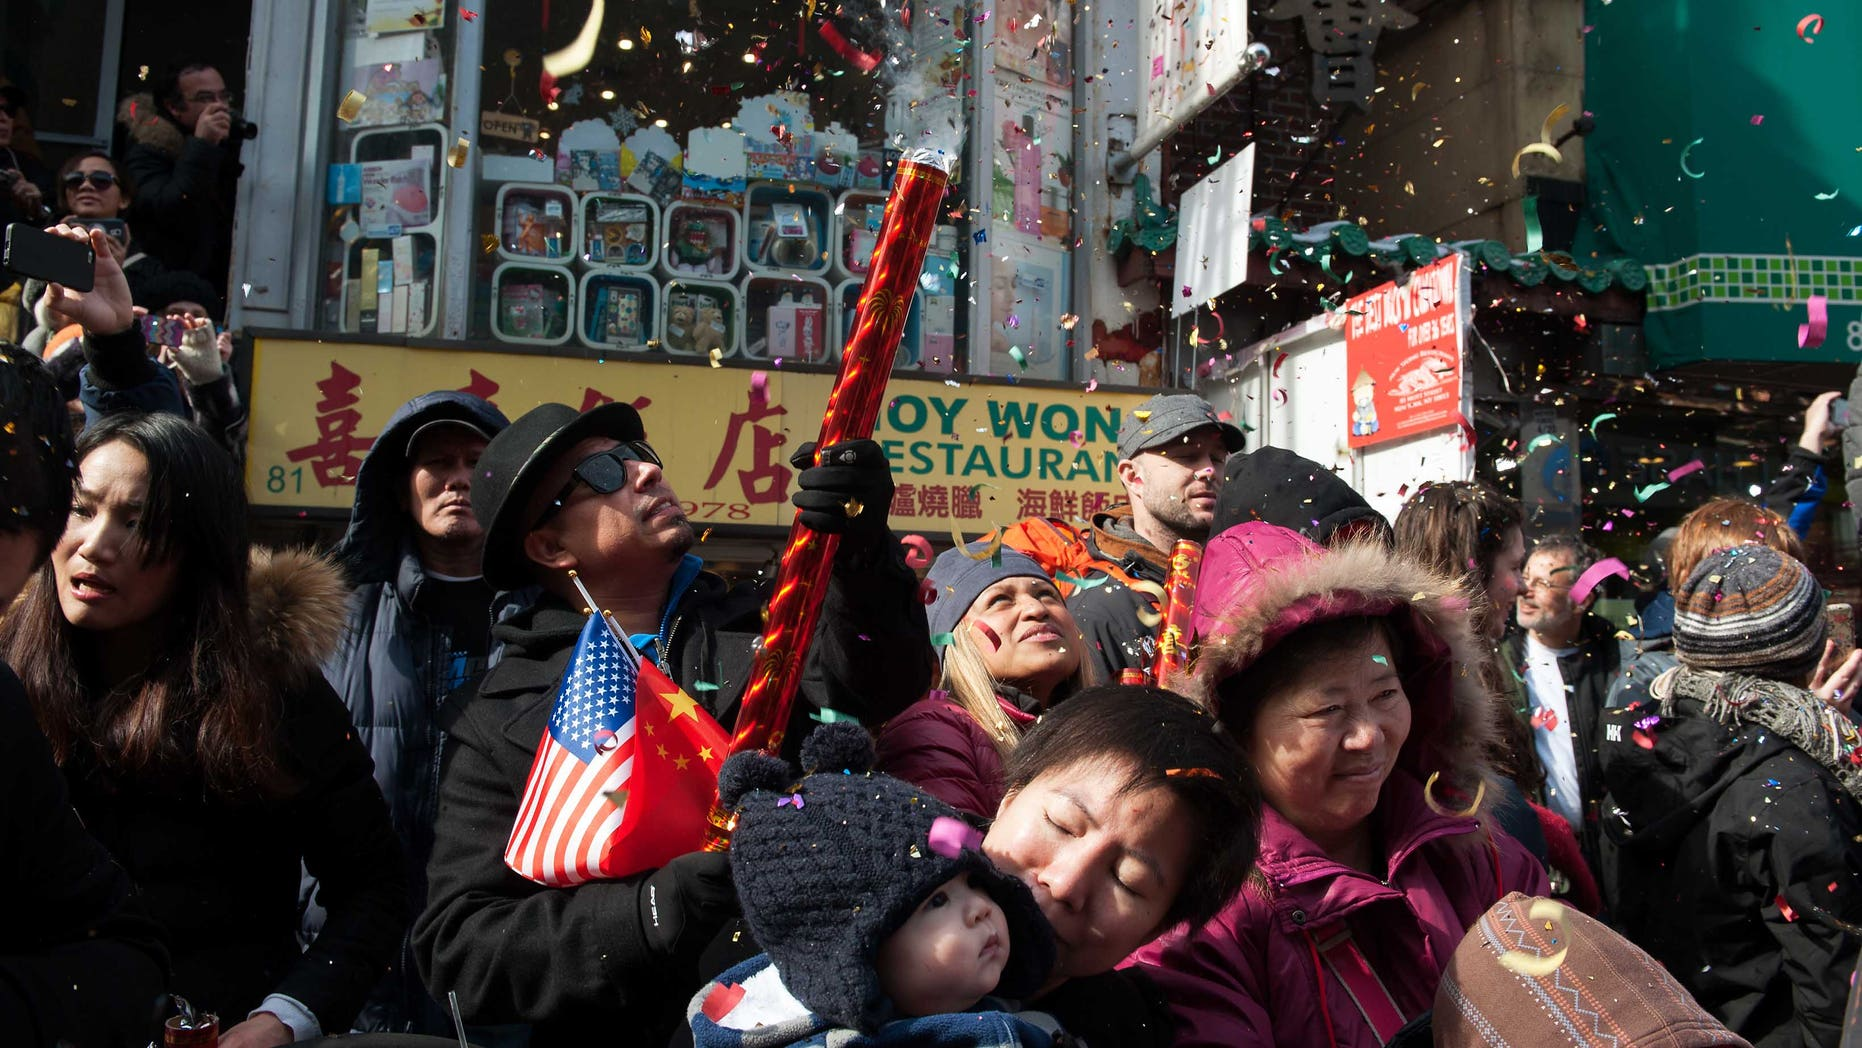 NEW YORK, NY - FEBRUARY 22: Revelers shoot confetti in the Chinese New Year parade in Manhattan's Chinatown on February 22, 2015 in New York City. The parade, now in it's 16th year, brought out hundreds of participants and viewers to celebrate the Year of the Sheep.  (Photo by Bryan Thomas/Getty Images)